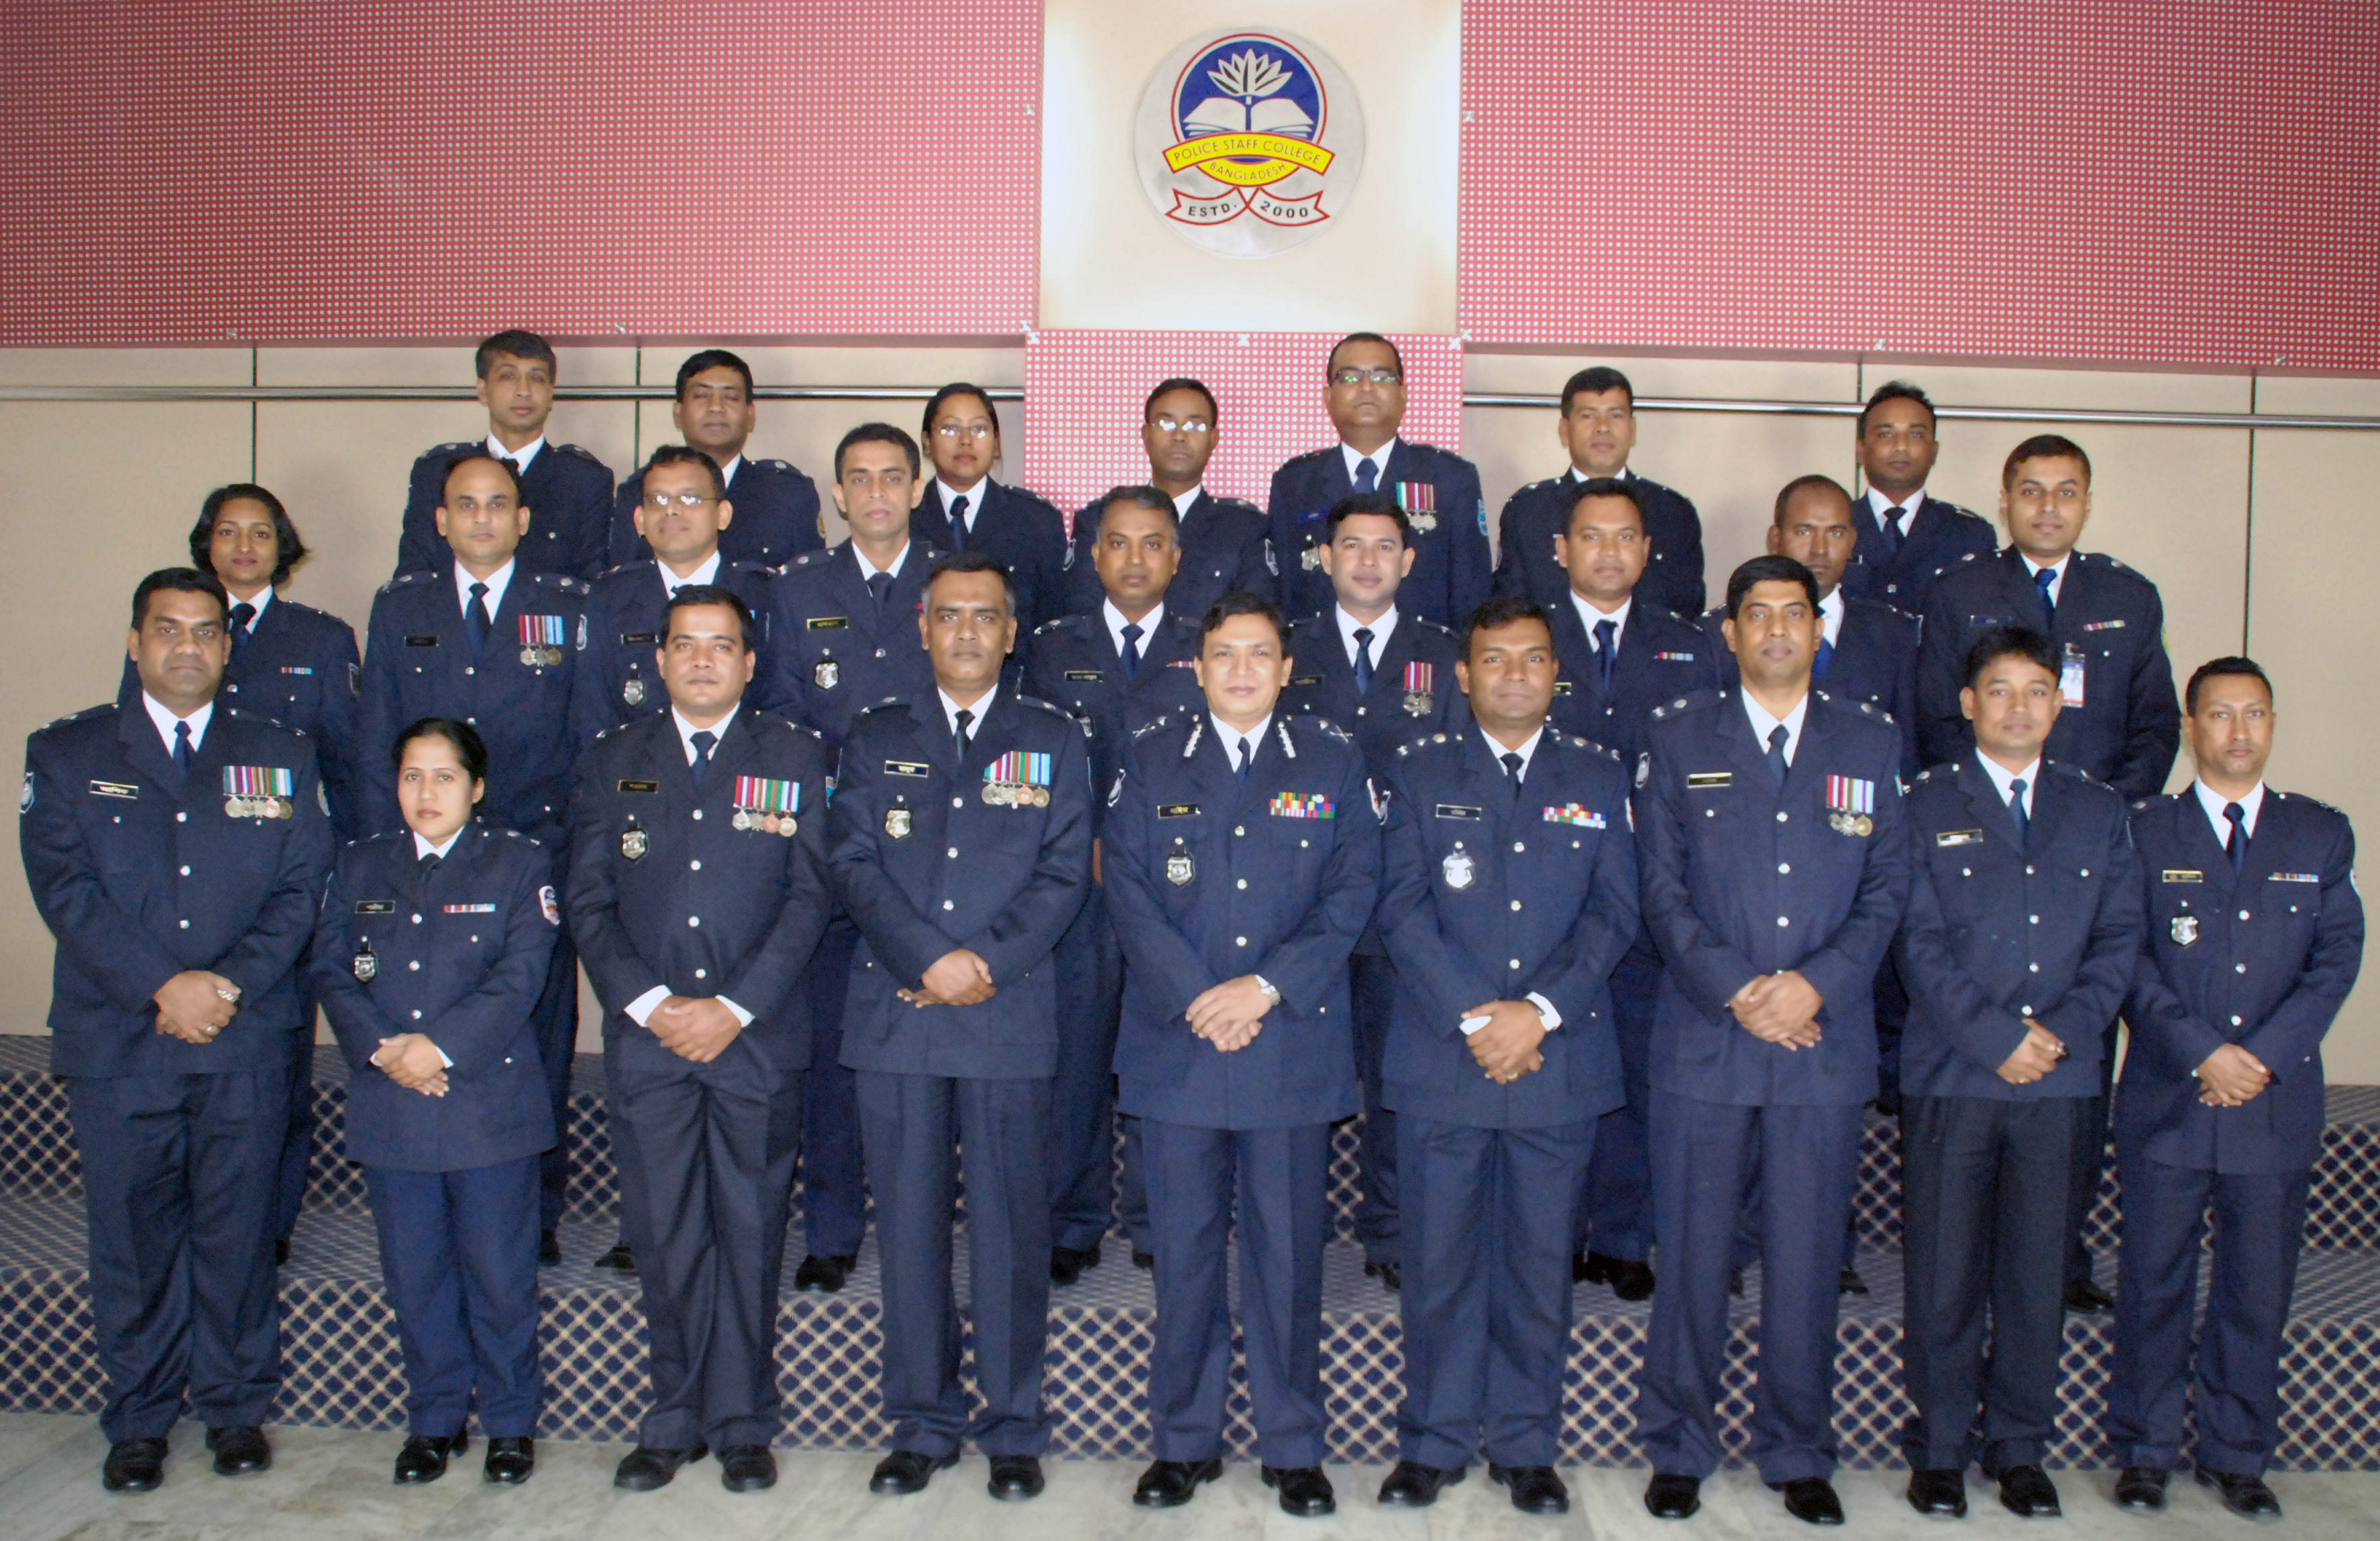 Participant of 8th Police Financial Management Certificate Course.